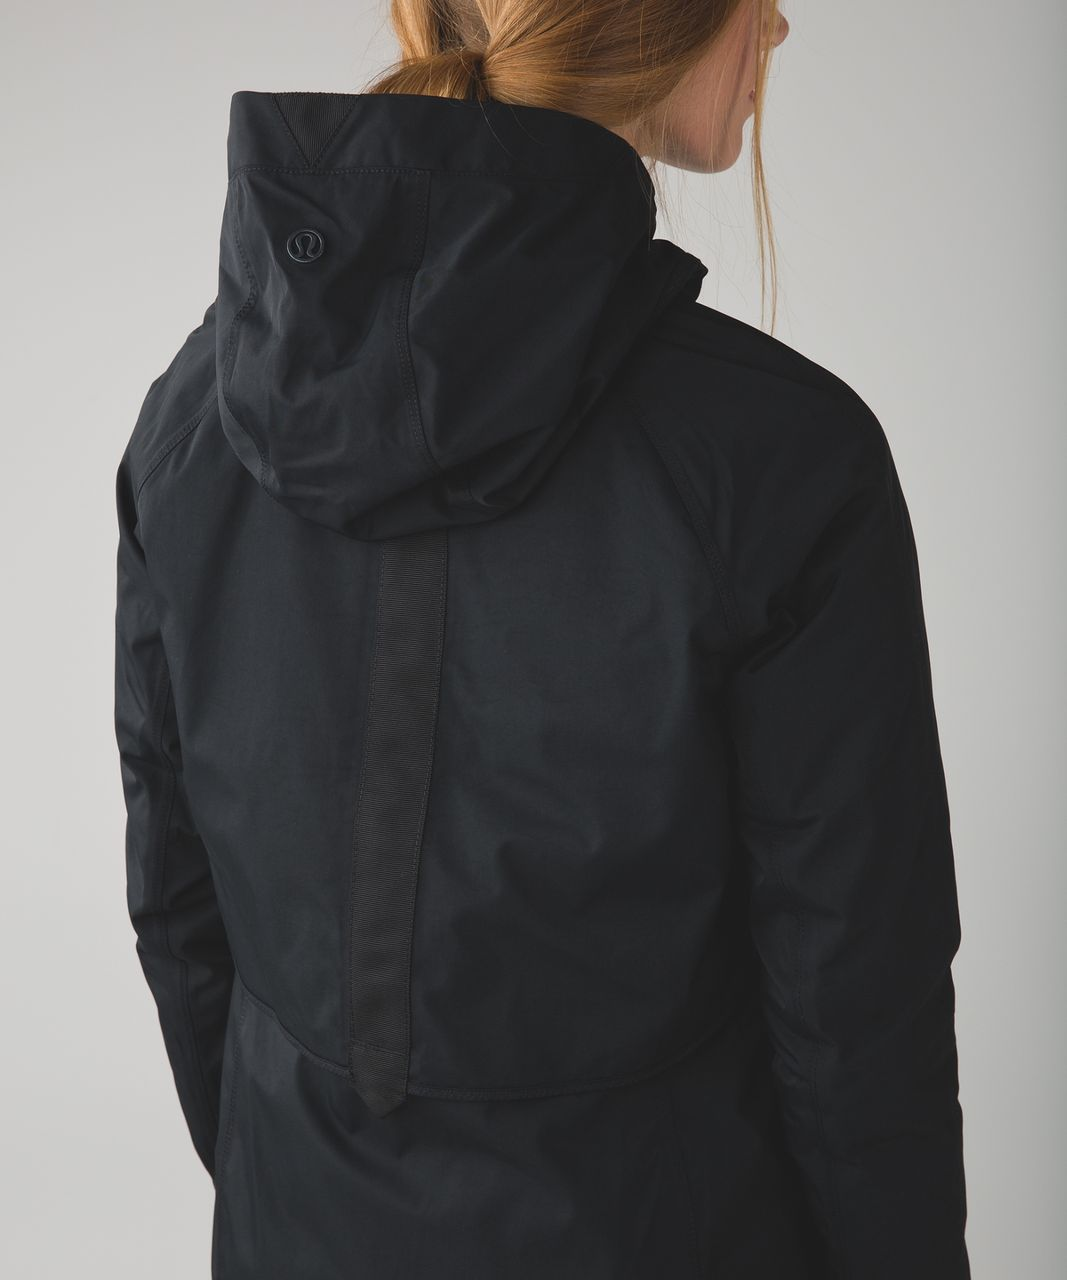 Lululemon Four The Helluvit Jacket - Black / Dandy Digie Multi